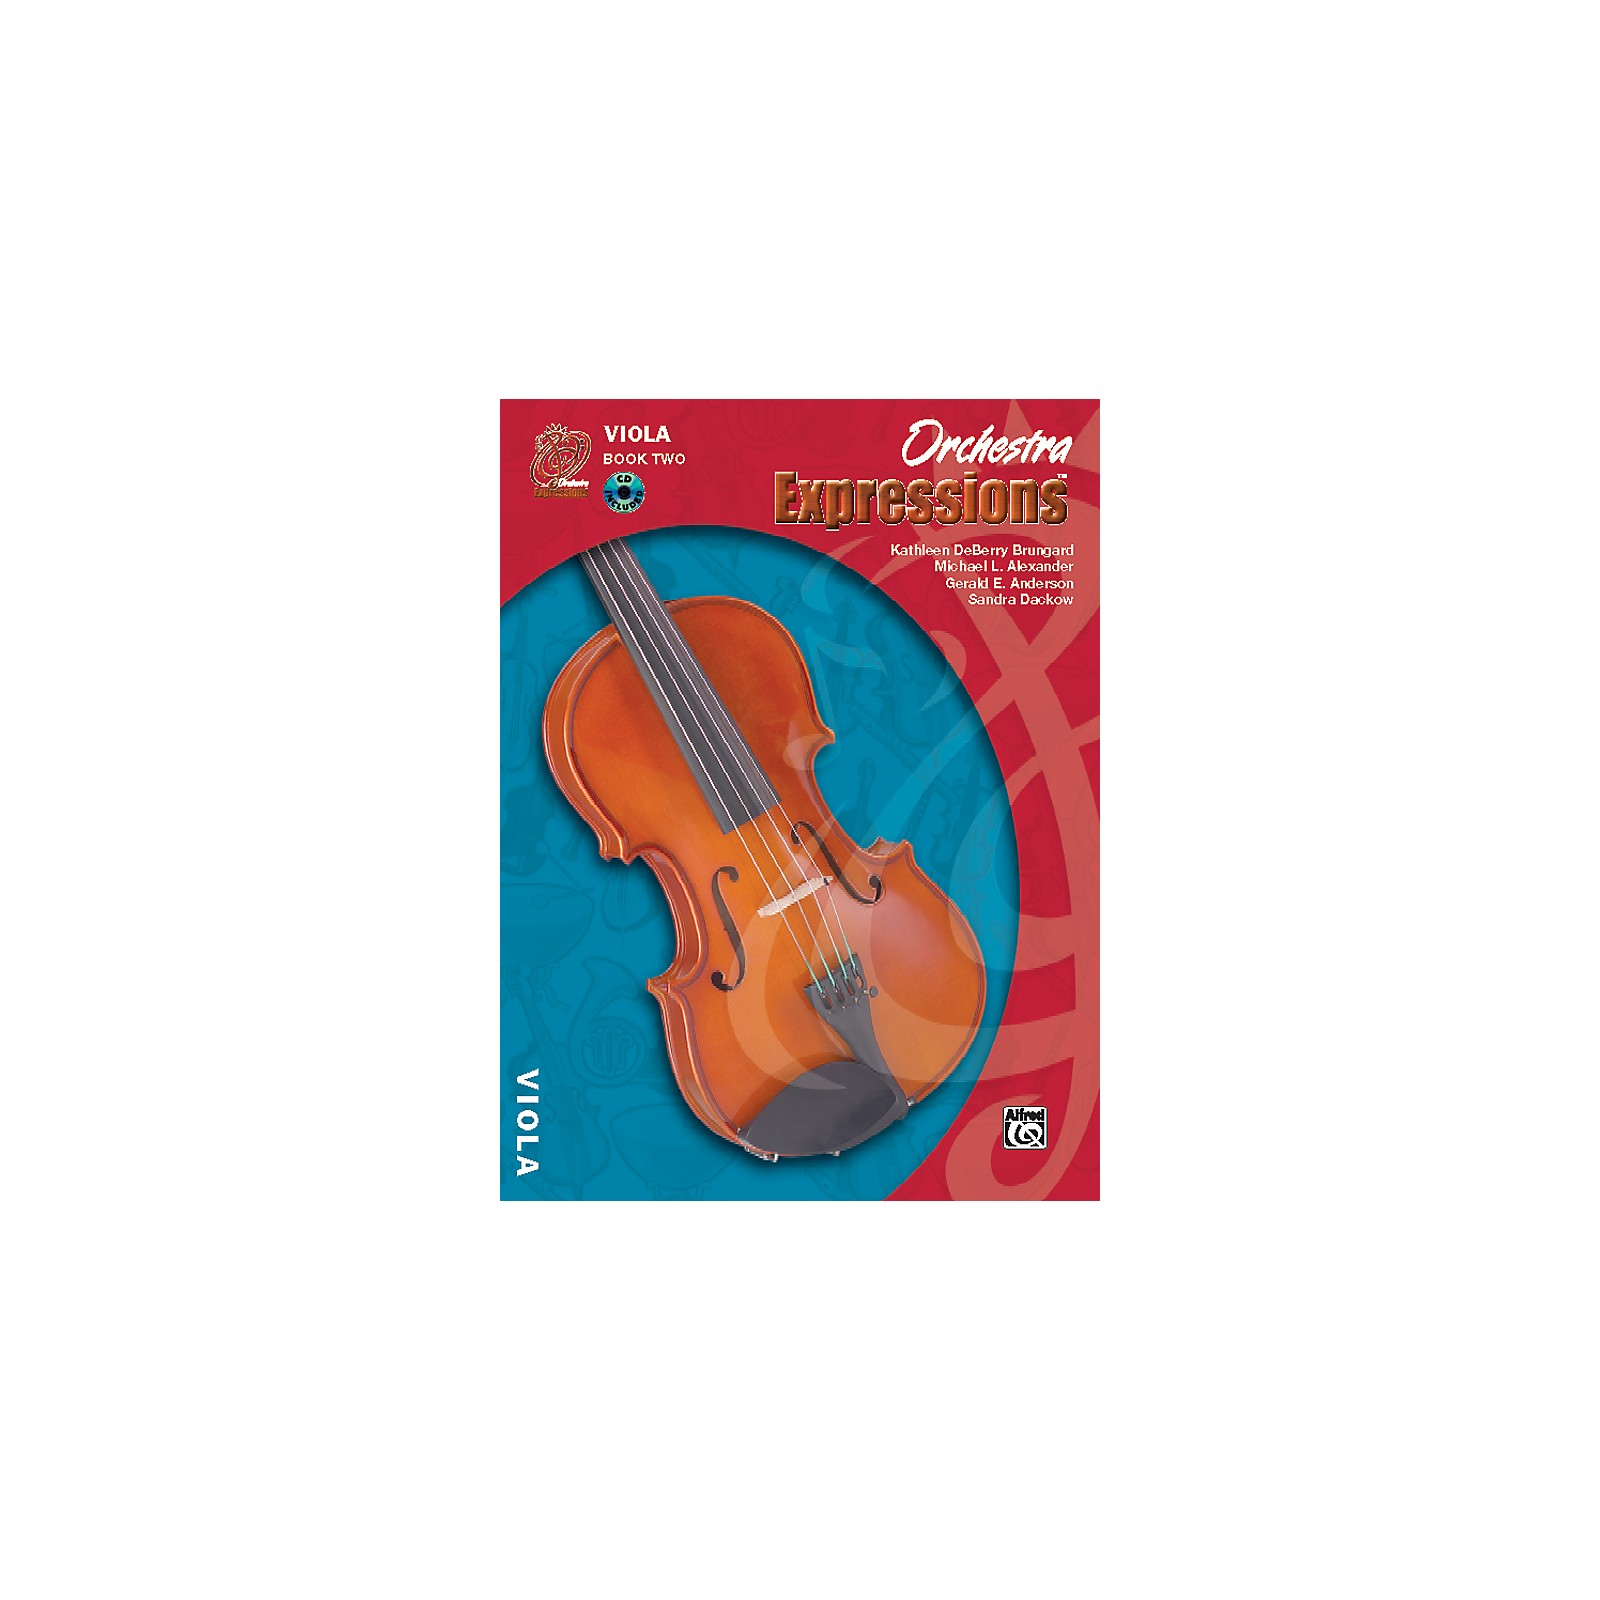 Alfred Orchestra Expressions Book Two Student Edition Viola Book & CD 1